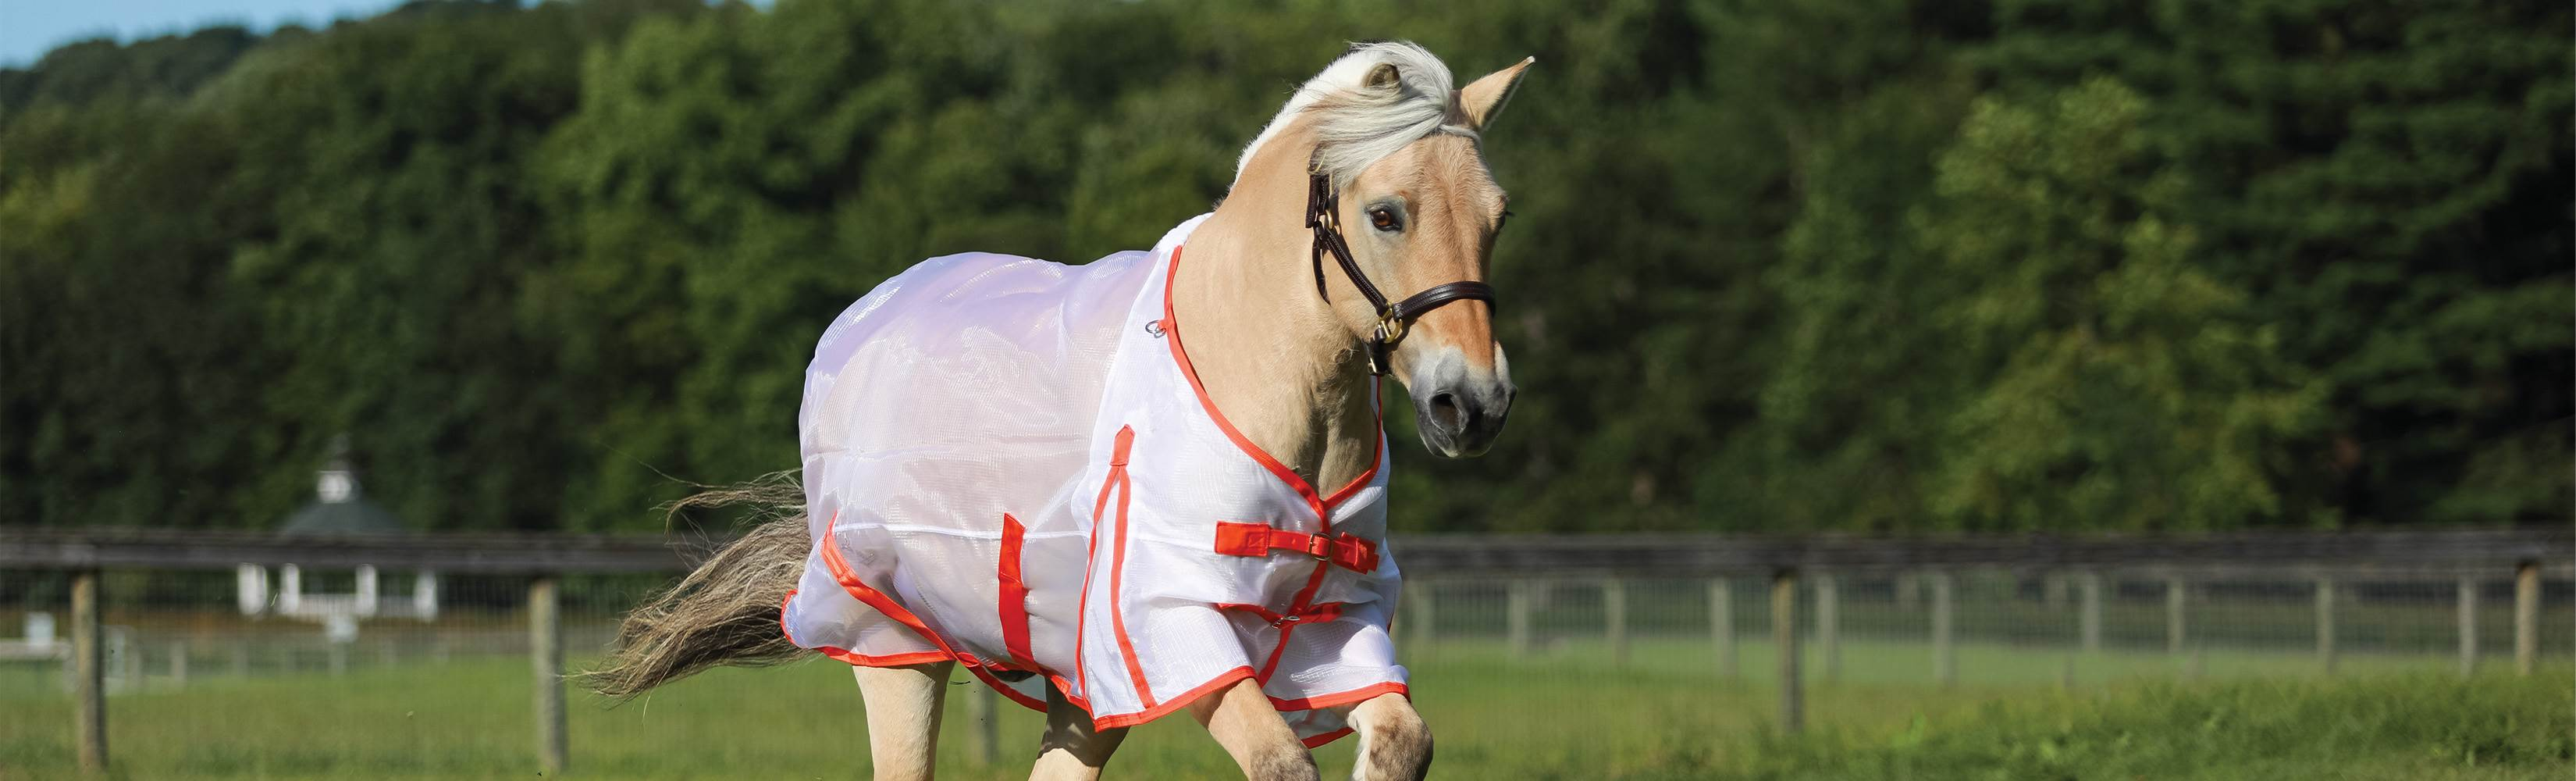 Can My Horse Wear a Fly Sheet in the Summer - What is the Coolest Fly sheet for Horses in the Summer?